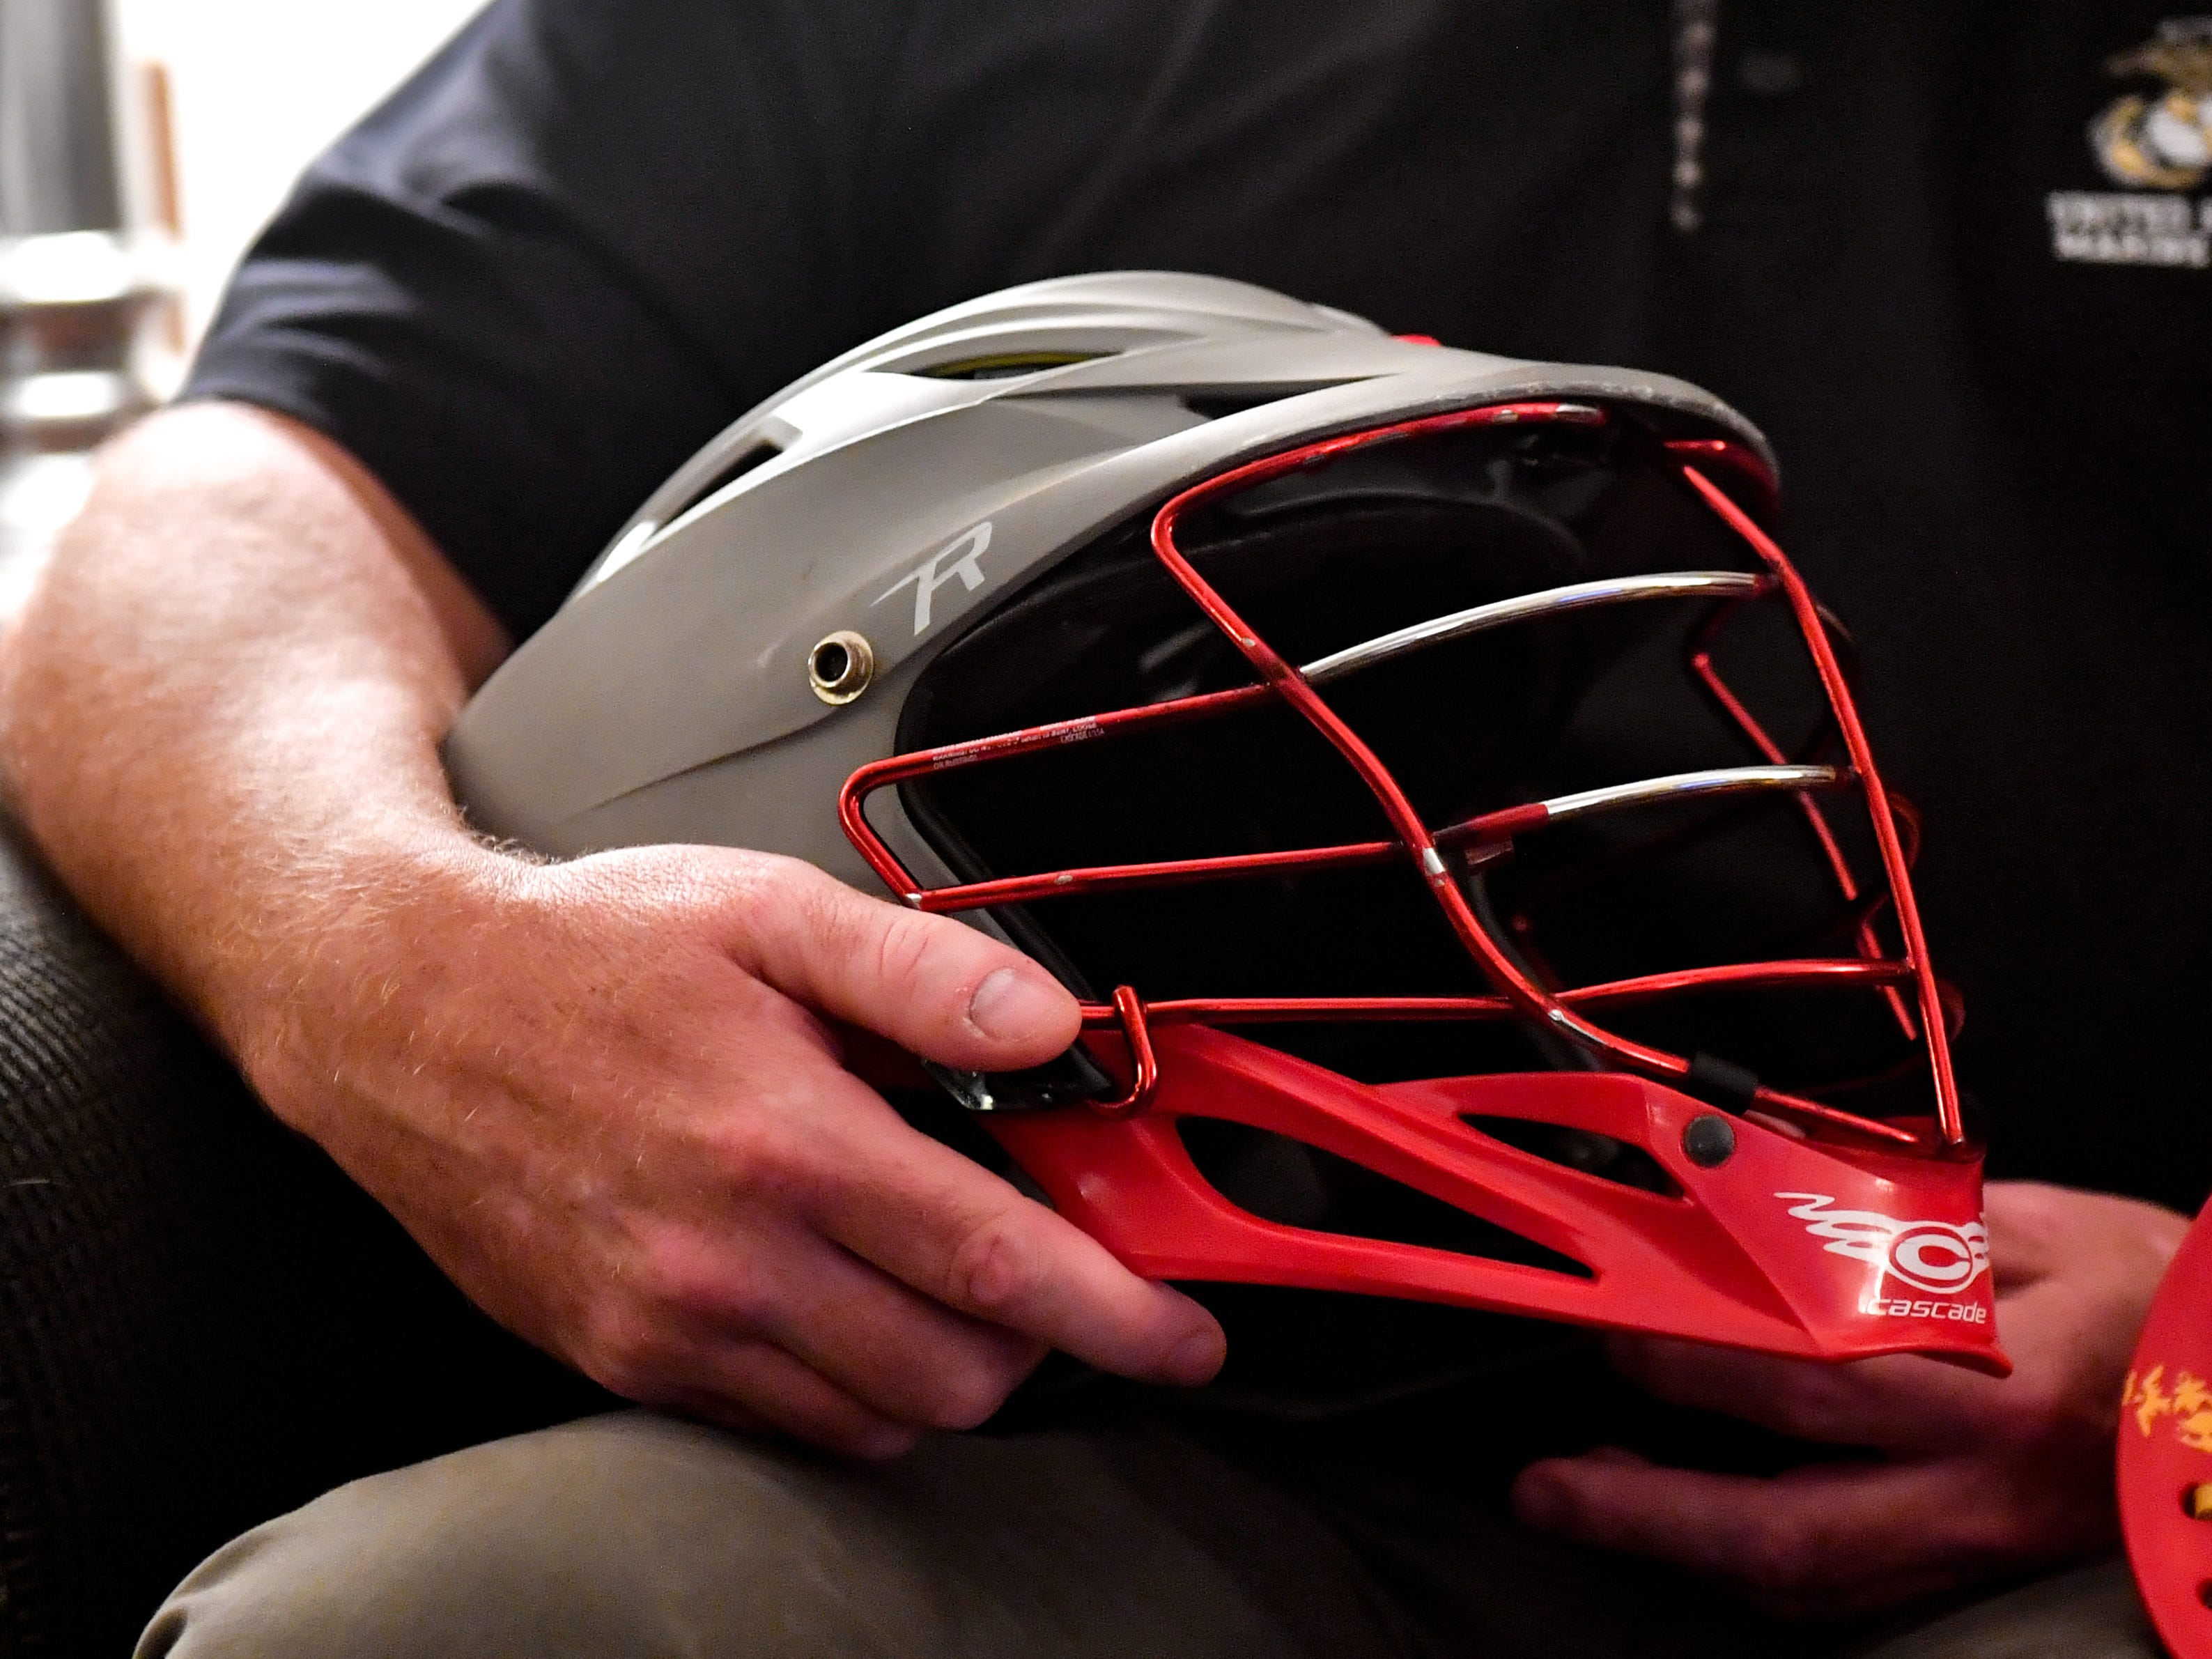 John O'Connor holds his son's helmet tightly as he discusses how Brendan became interested in lacrosse.